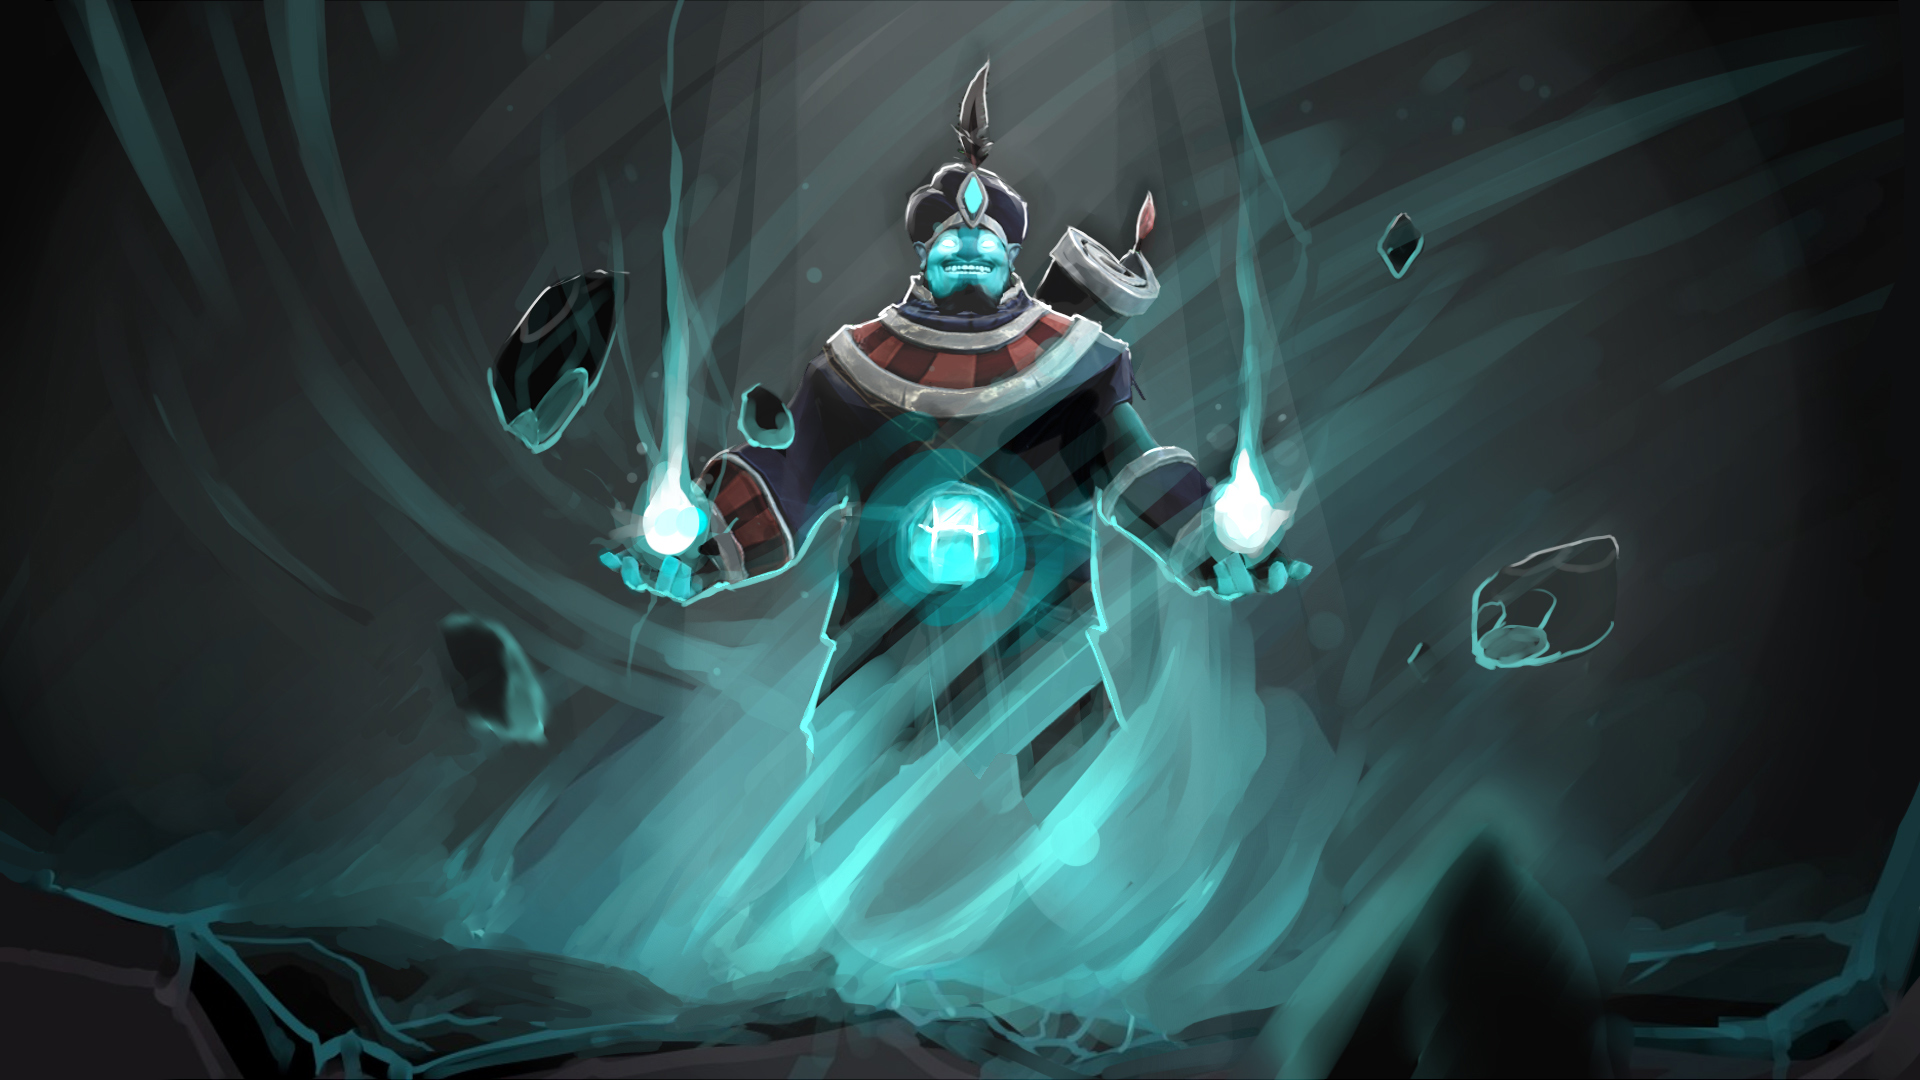 dota2 wallpapers.seoplus.com.ua 199